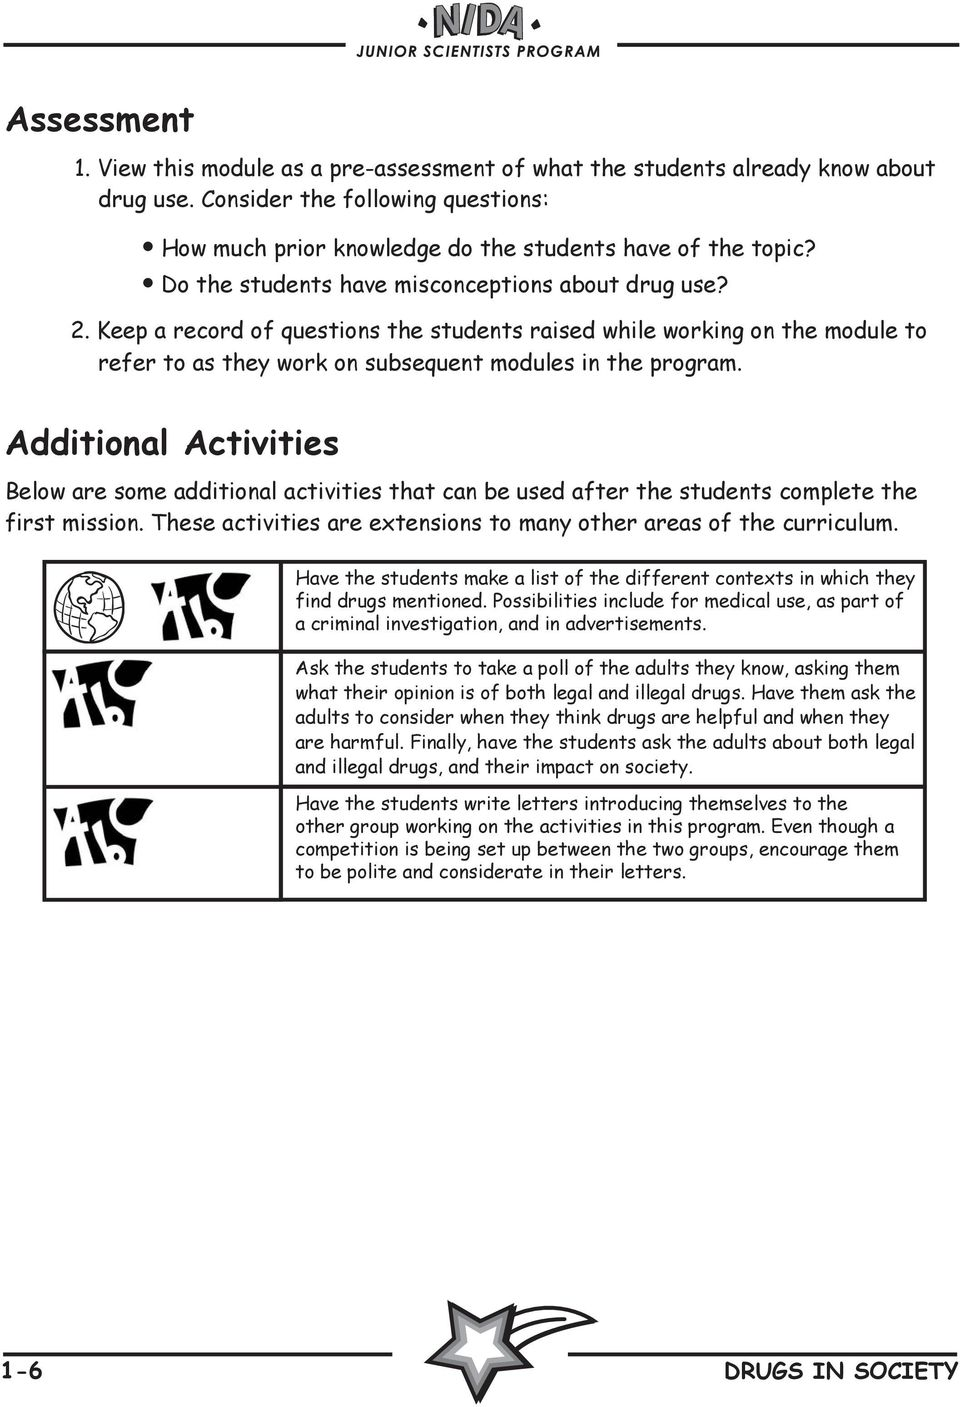 Additional Activities Below are some additional activities that can be used after the students complete the first mission. These activities are extensions to many other areas of the curriculum.